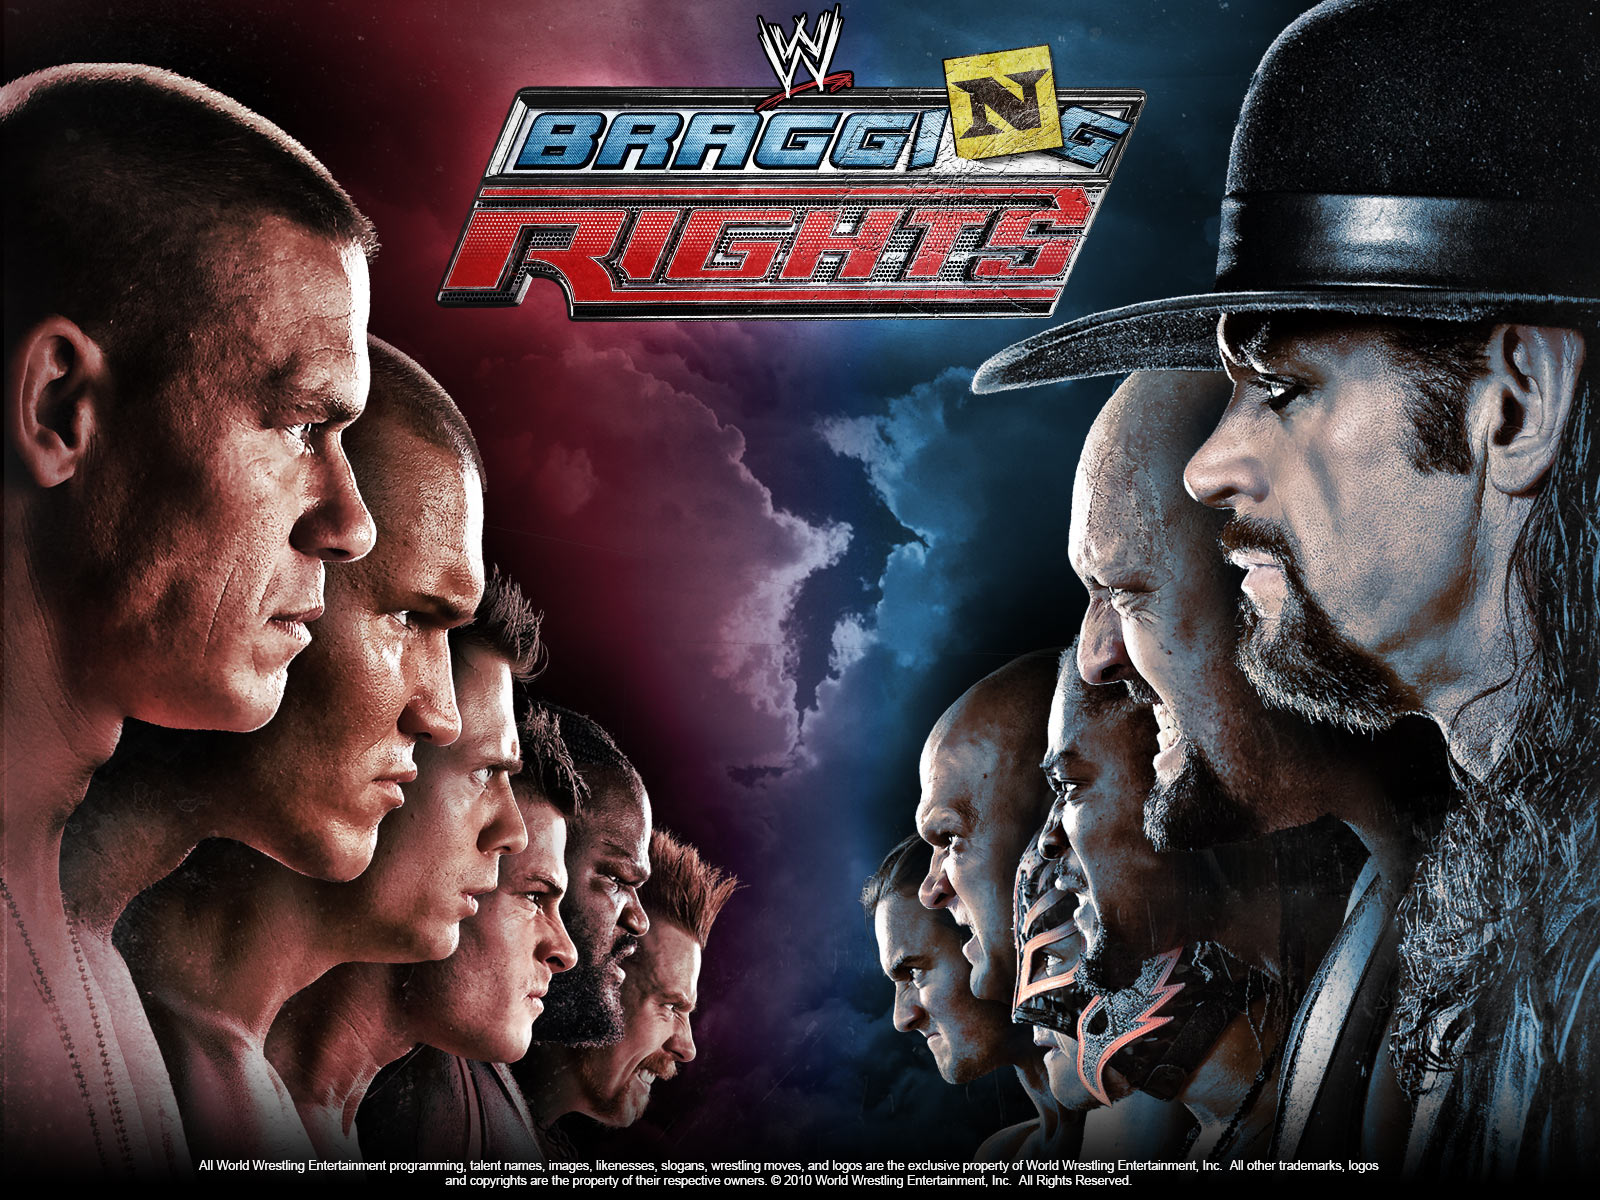 WWE WWE Bragging Rights 2010 , WWE wallpapers